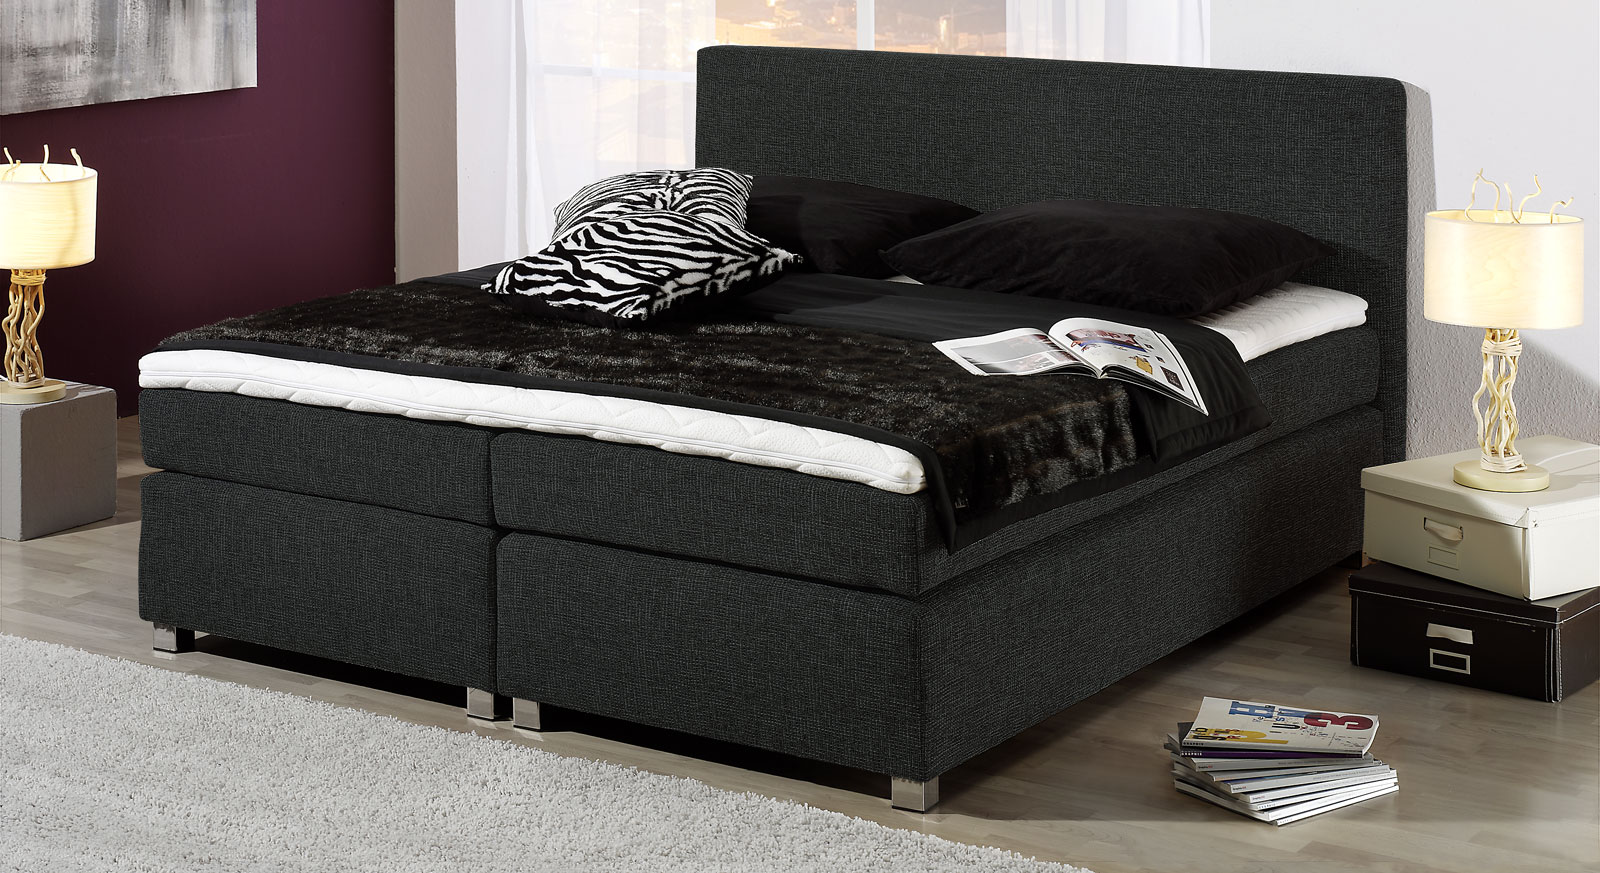 boxspring bettgestell mit kaltschaum topper melbourne. Black Bedroom Furniture Sets. Home Design Ideas